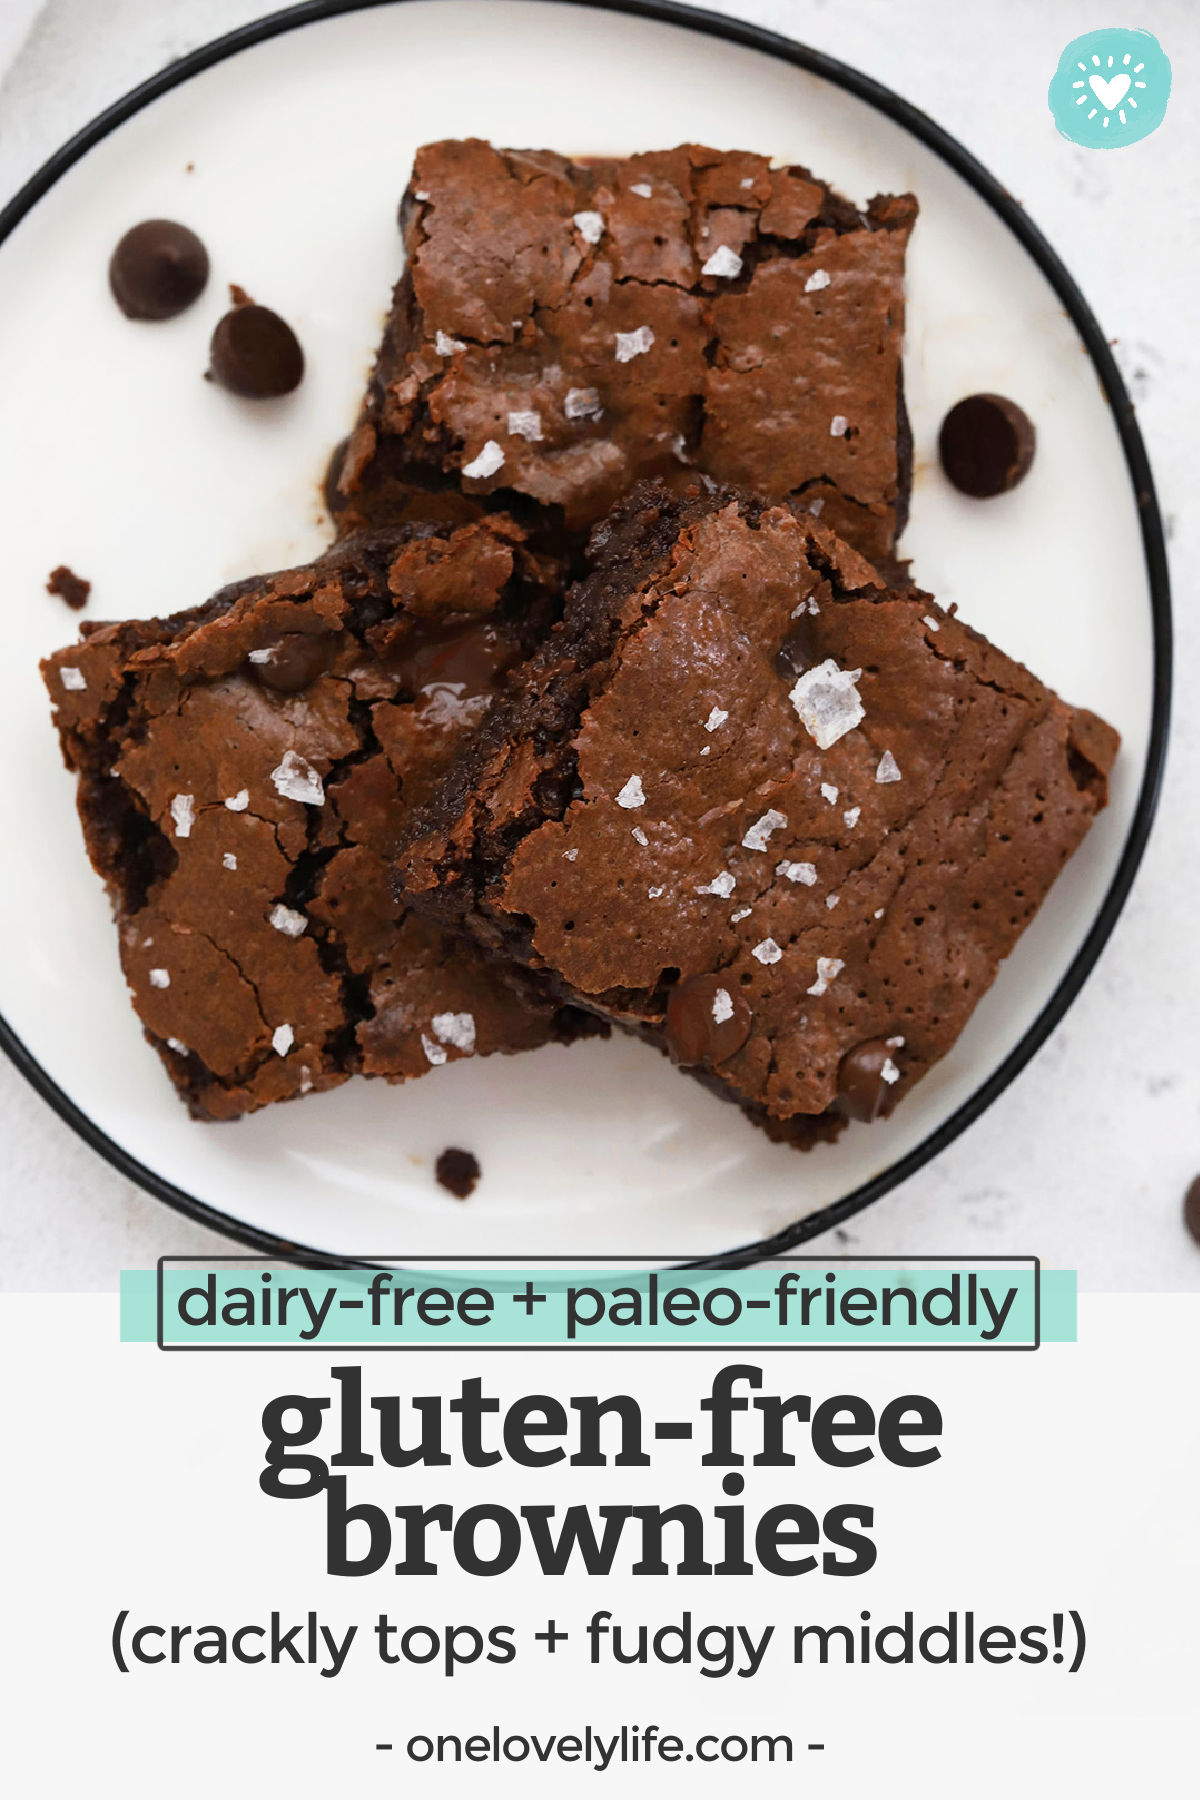 The PERFECT Gluten-Free Brownies - These almond flour brownies are everything I'm looking for--fudgy and rich, chocolatey and delicious, all without gluten, grains, or dairy! // Paleo brownies // Gluten-Free brownies // Healthy Brownies #glutenfree #paleo #brownies #almondflour